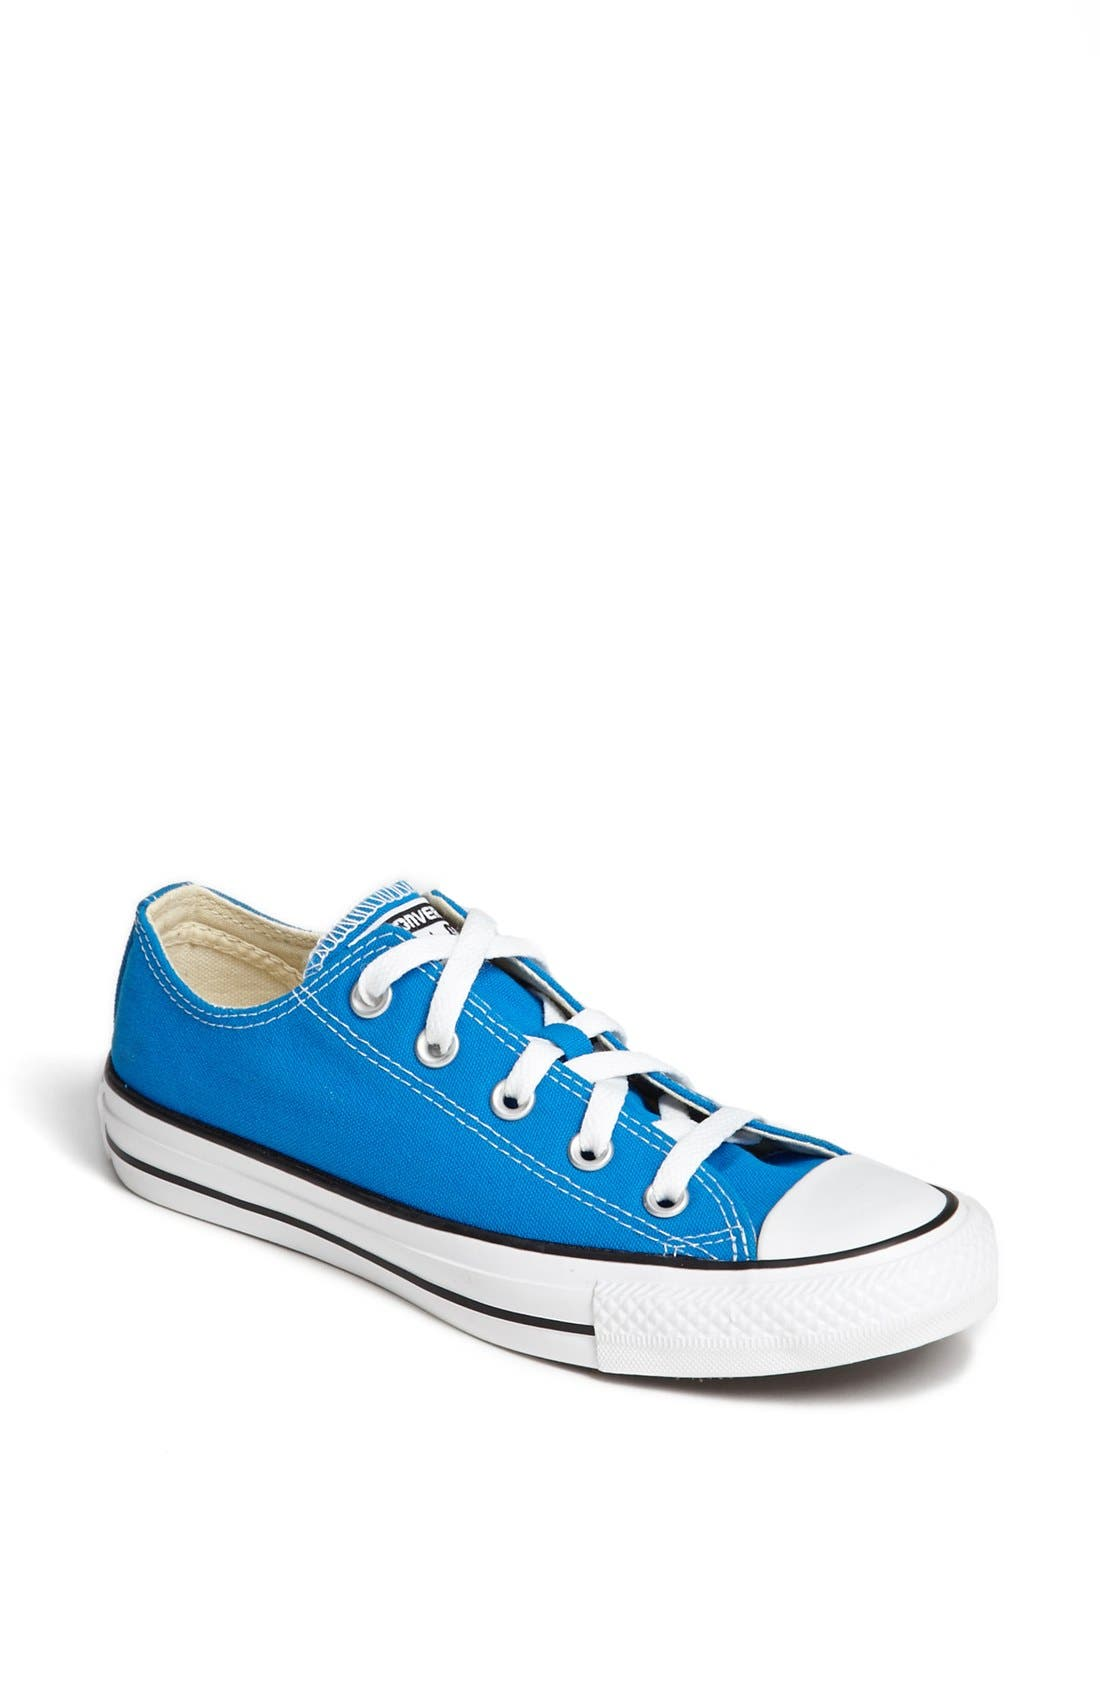 Alternate Image 1 Selected - Converse Chuck Taylor® All Star® Low Sneaker (Women)